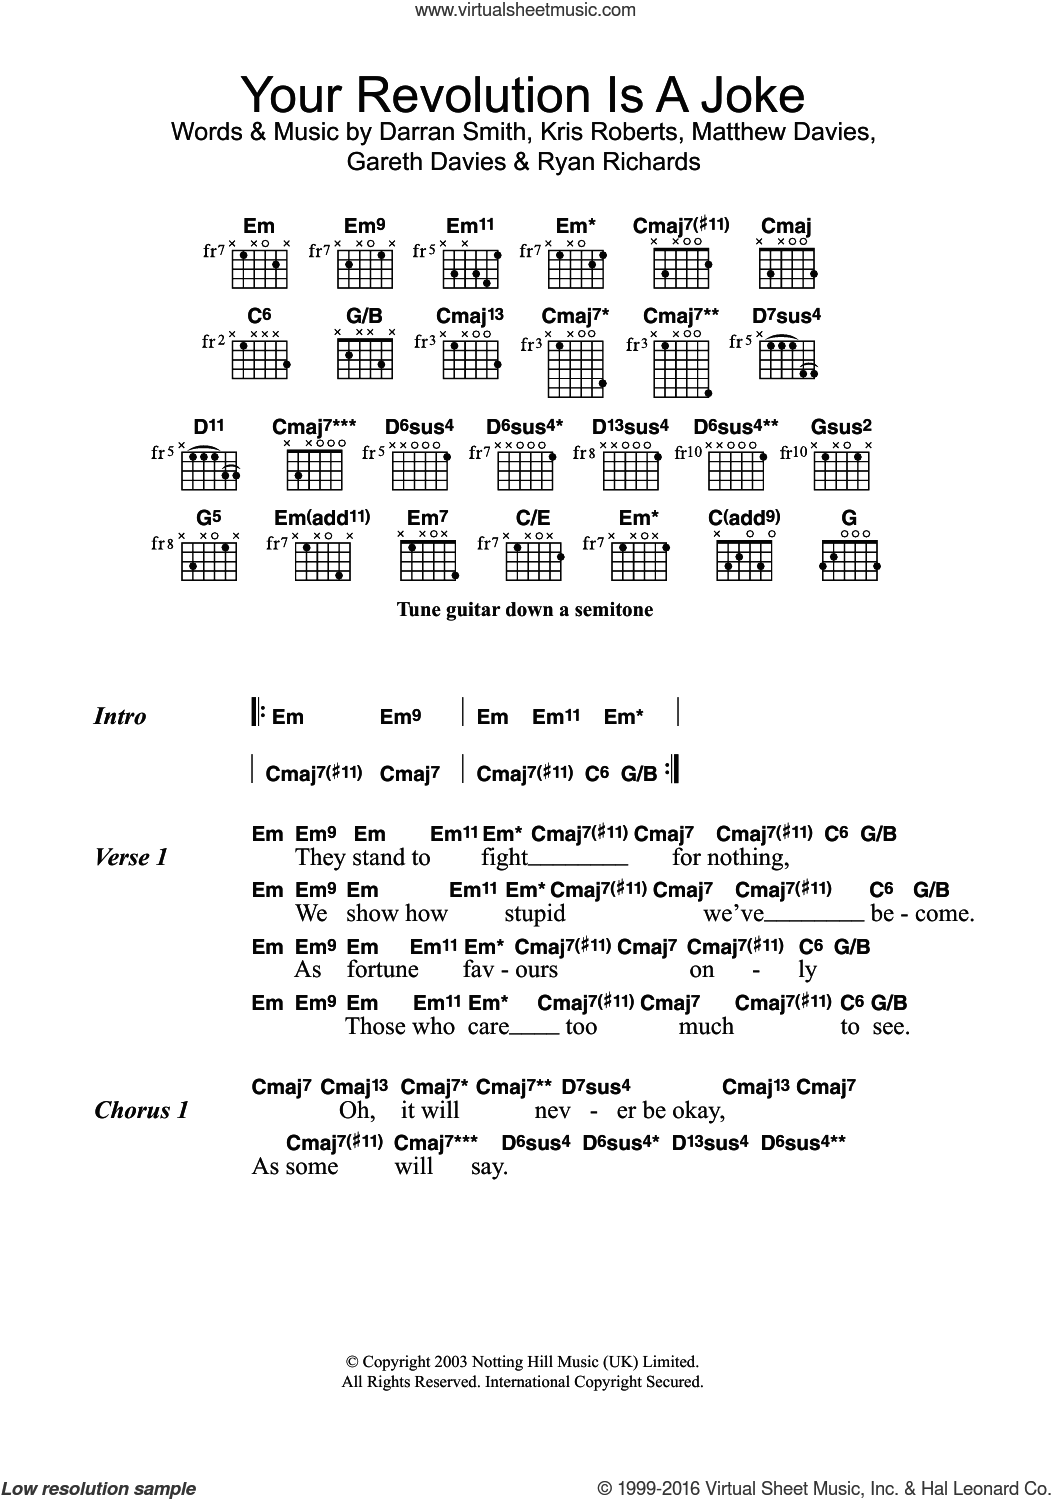 Friend - Your Revolution Is A Joke sheet music for guitar (chords)